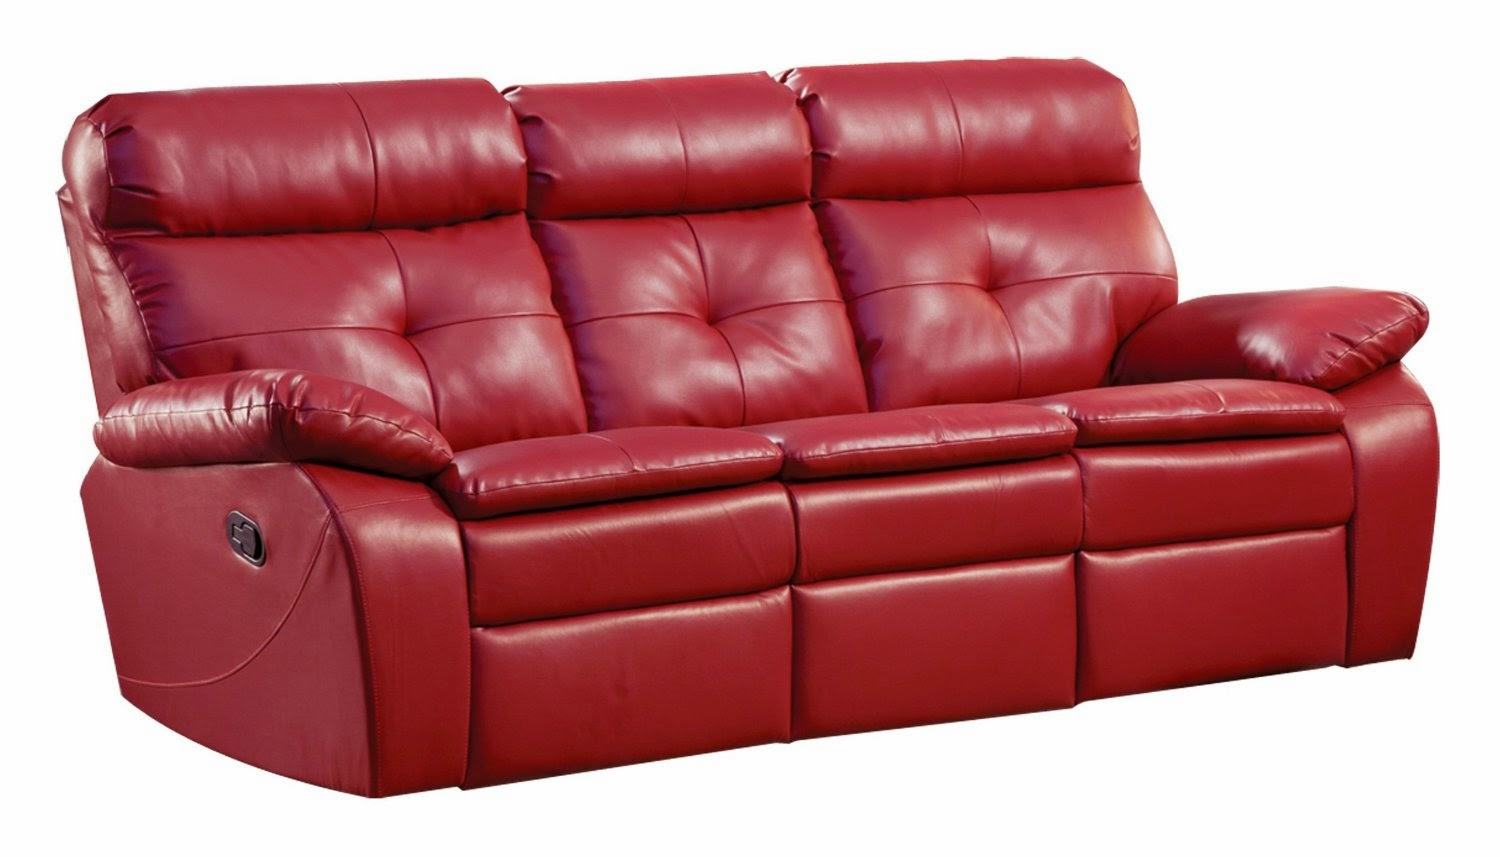 Red Sofas On Sale La Sofateria Barcelona Opiniones Reclining For Cheap Leather Sofa